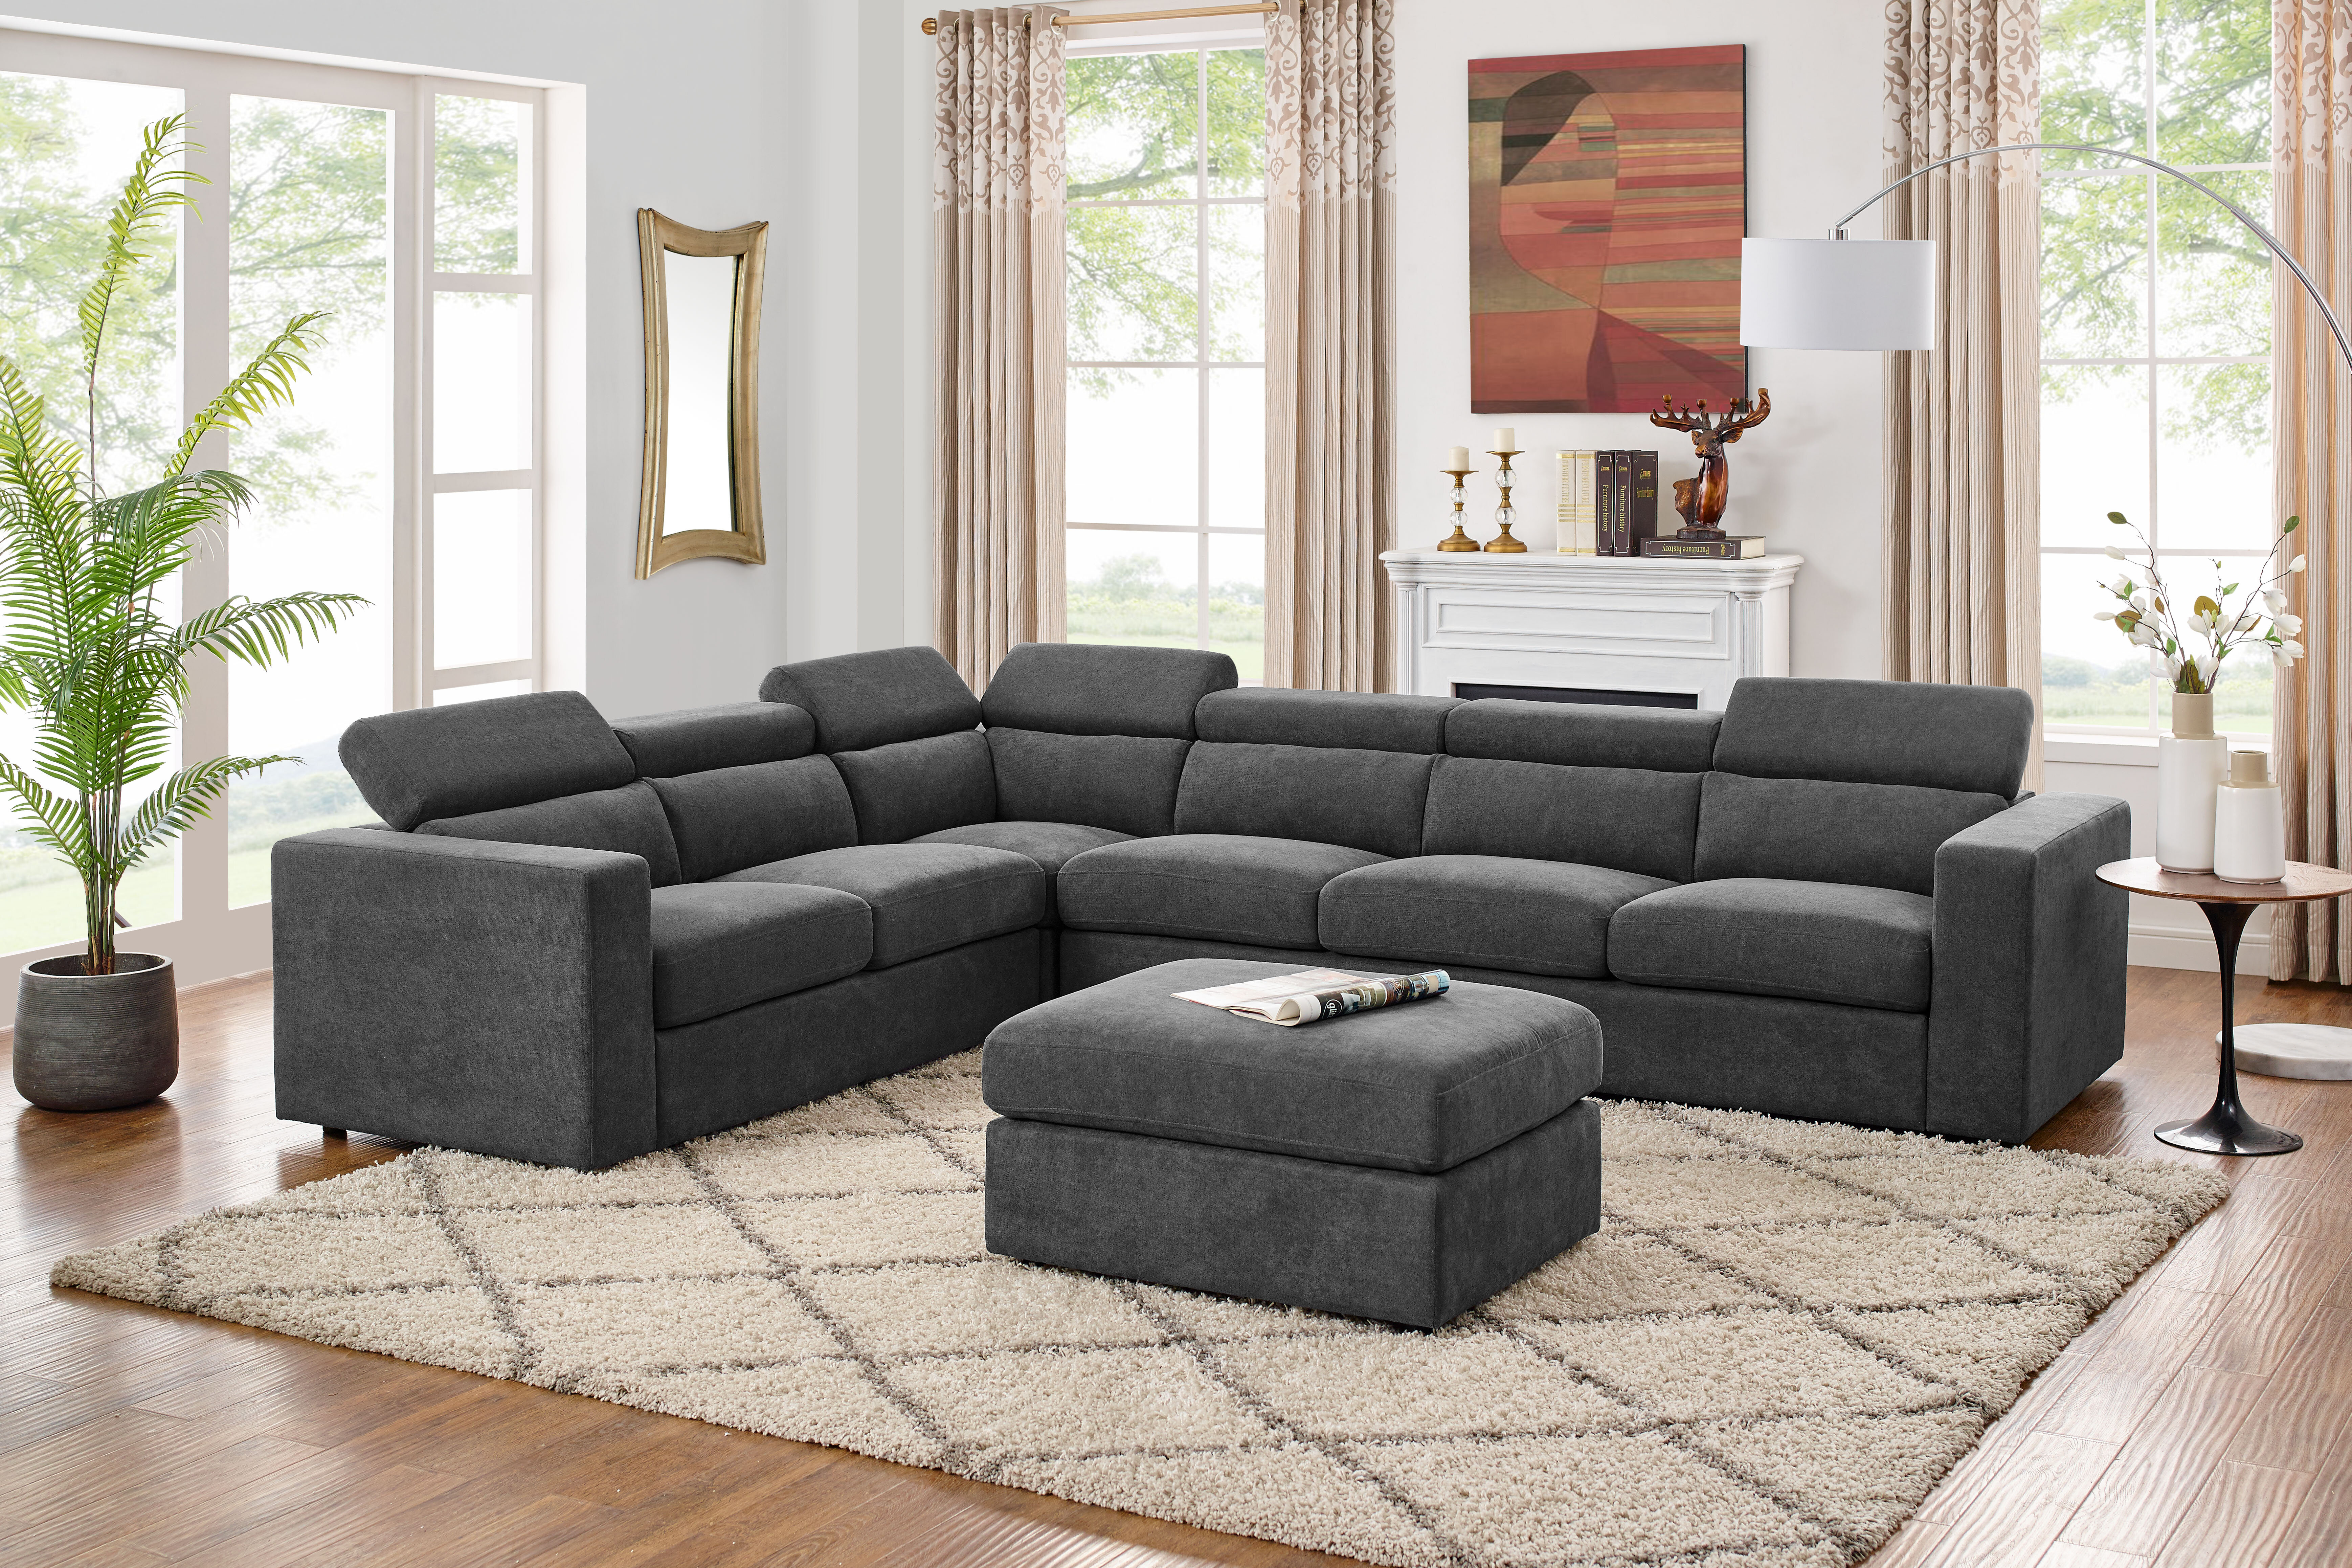 Fowlerville 5Seater Right Hand Facing Sectional Sofa With Ottoman